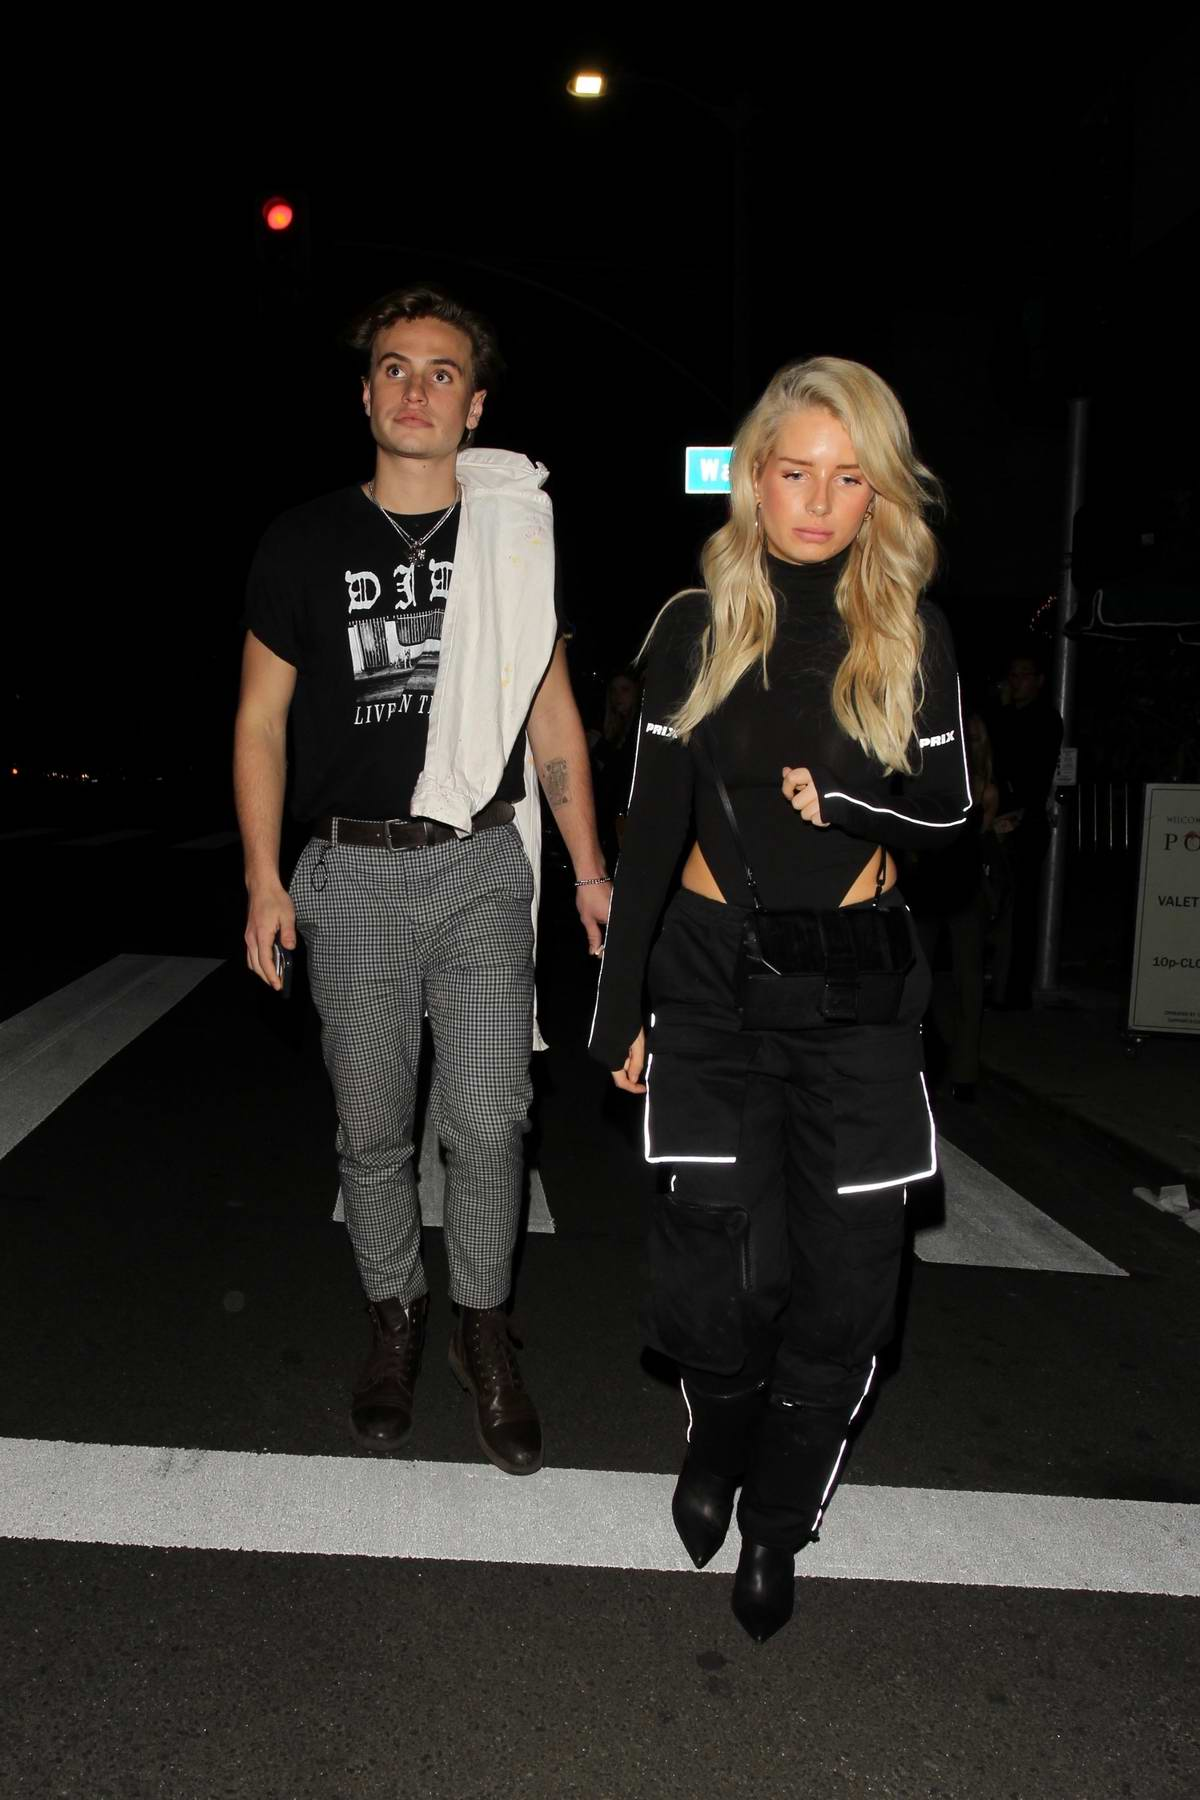 Lottie Moss and Daniel Mickelson spotted leaving Poppy nightclub in West Hollywood, Los Angeles